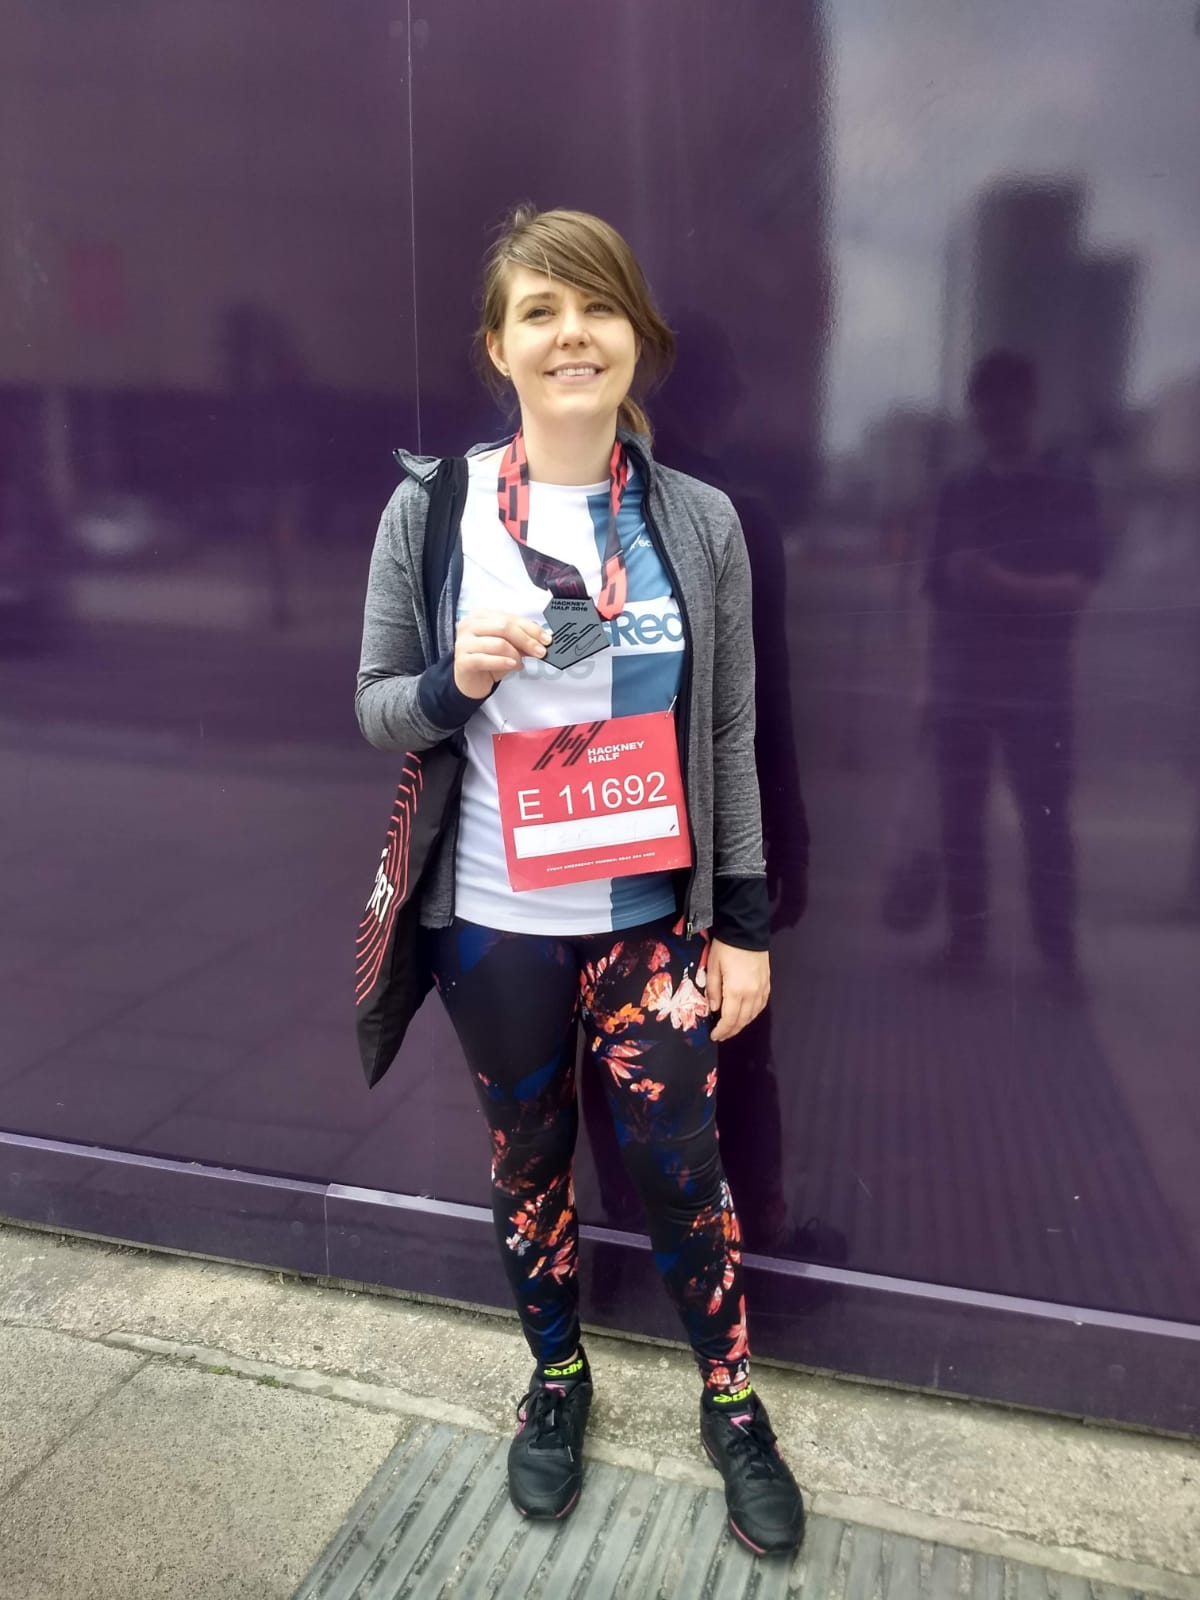 What is it like to take part in a Challenge Event?